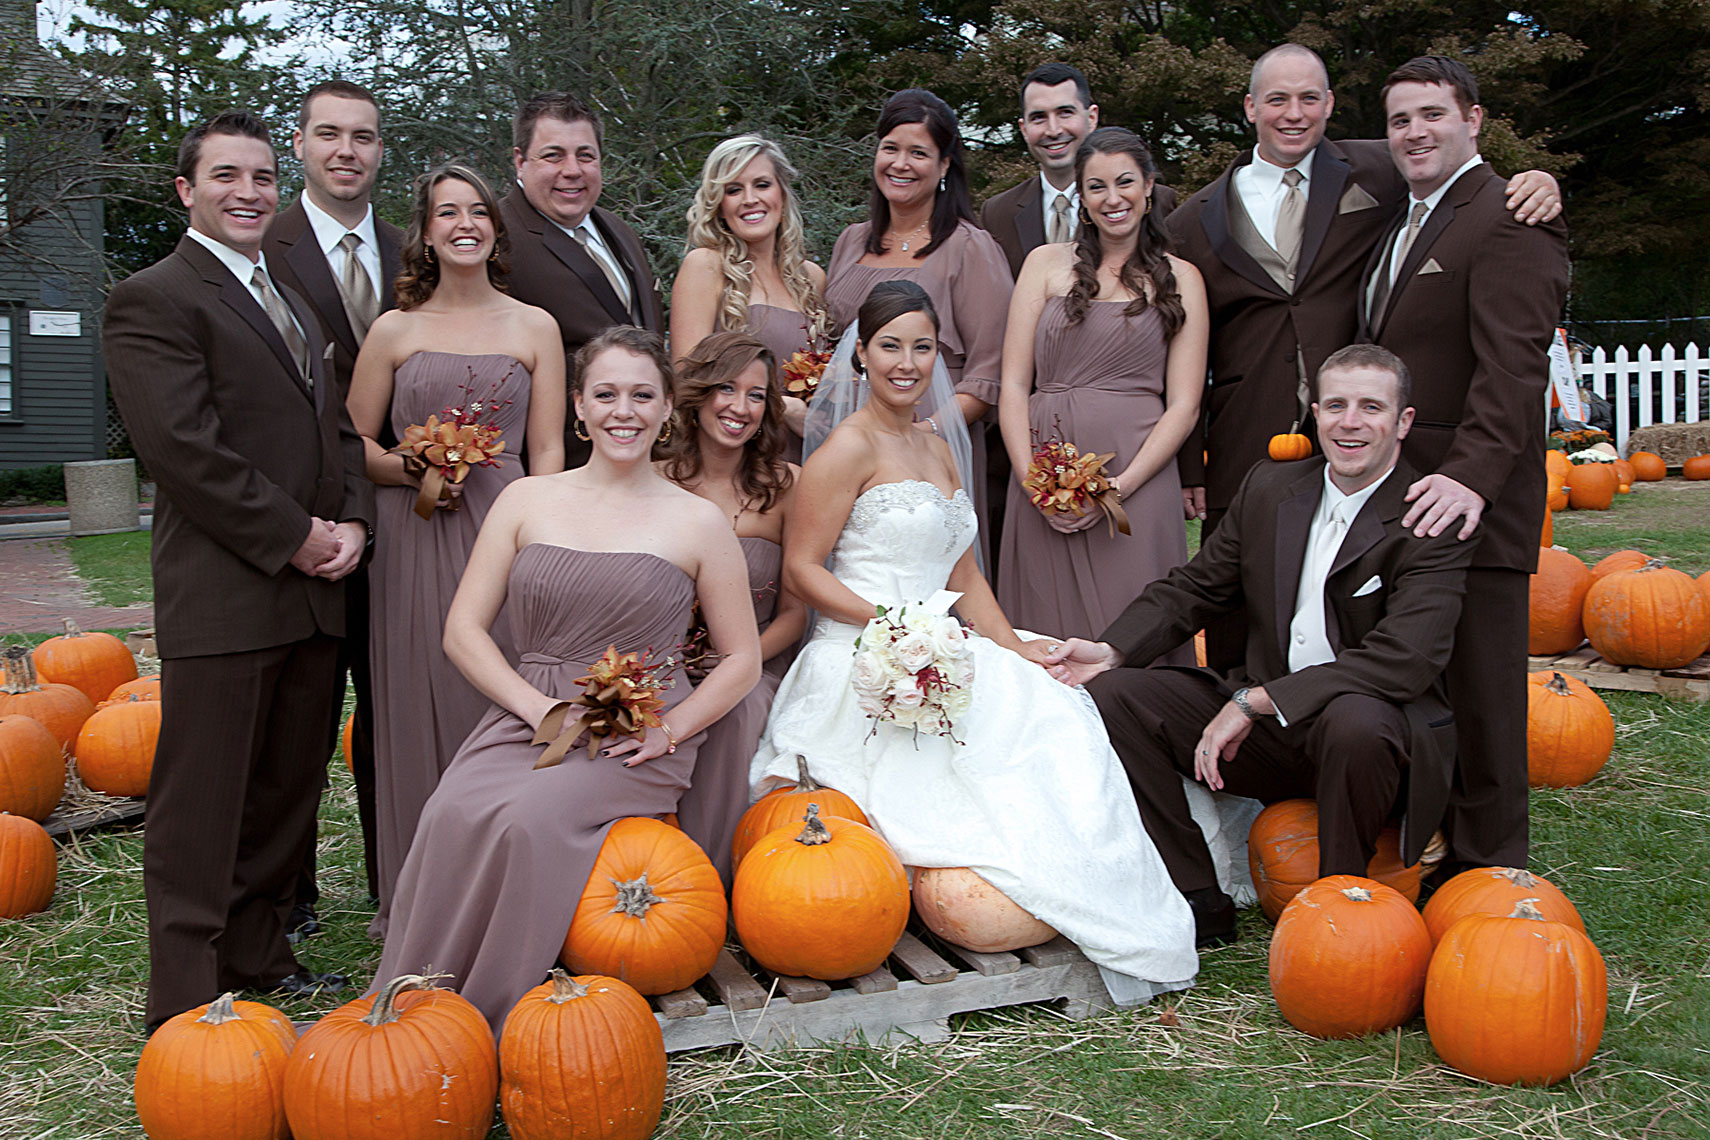 Wedding Party In The Pumkin Patch